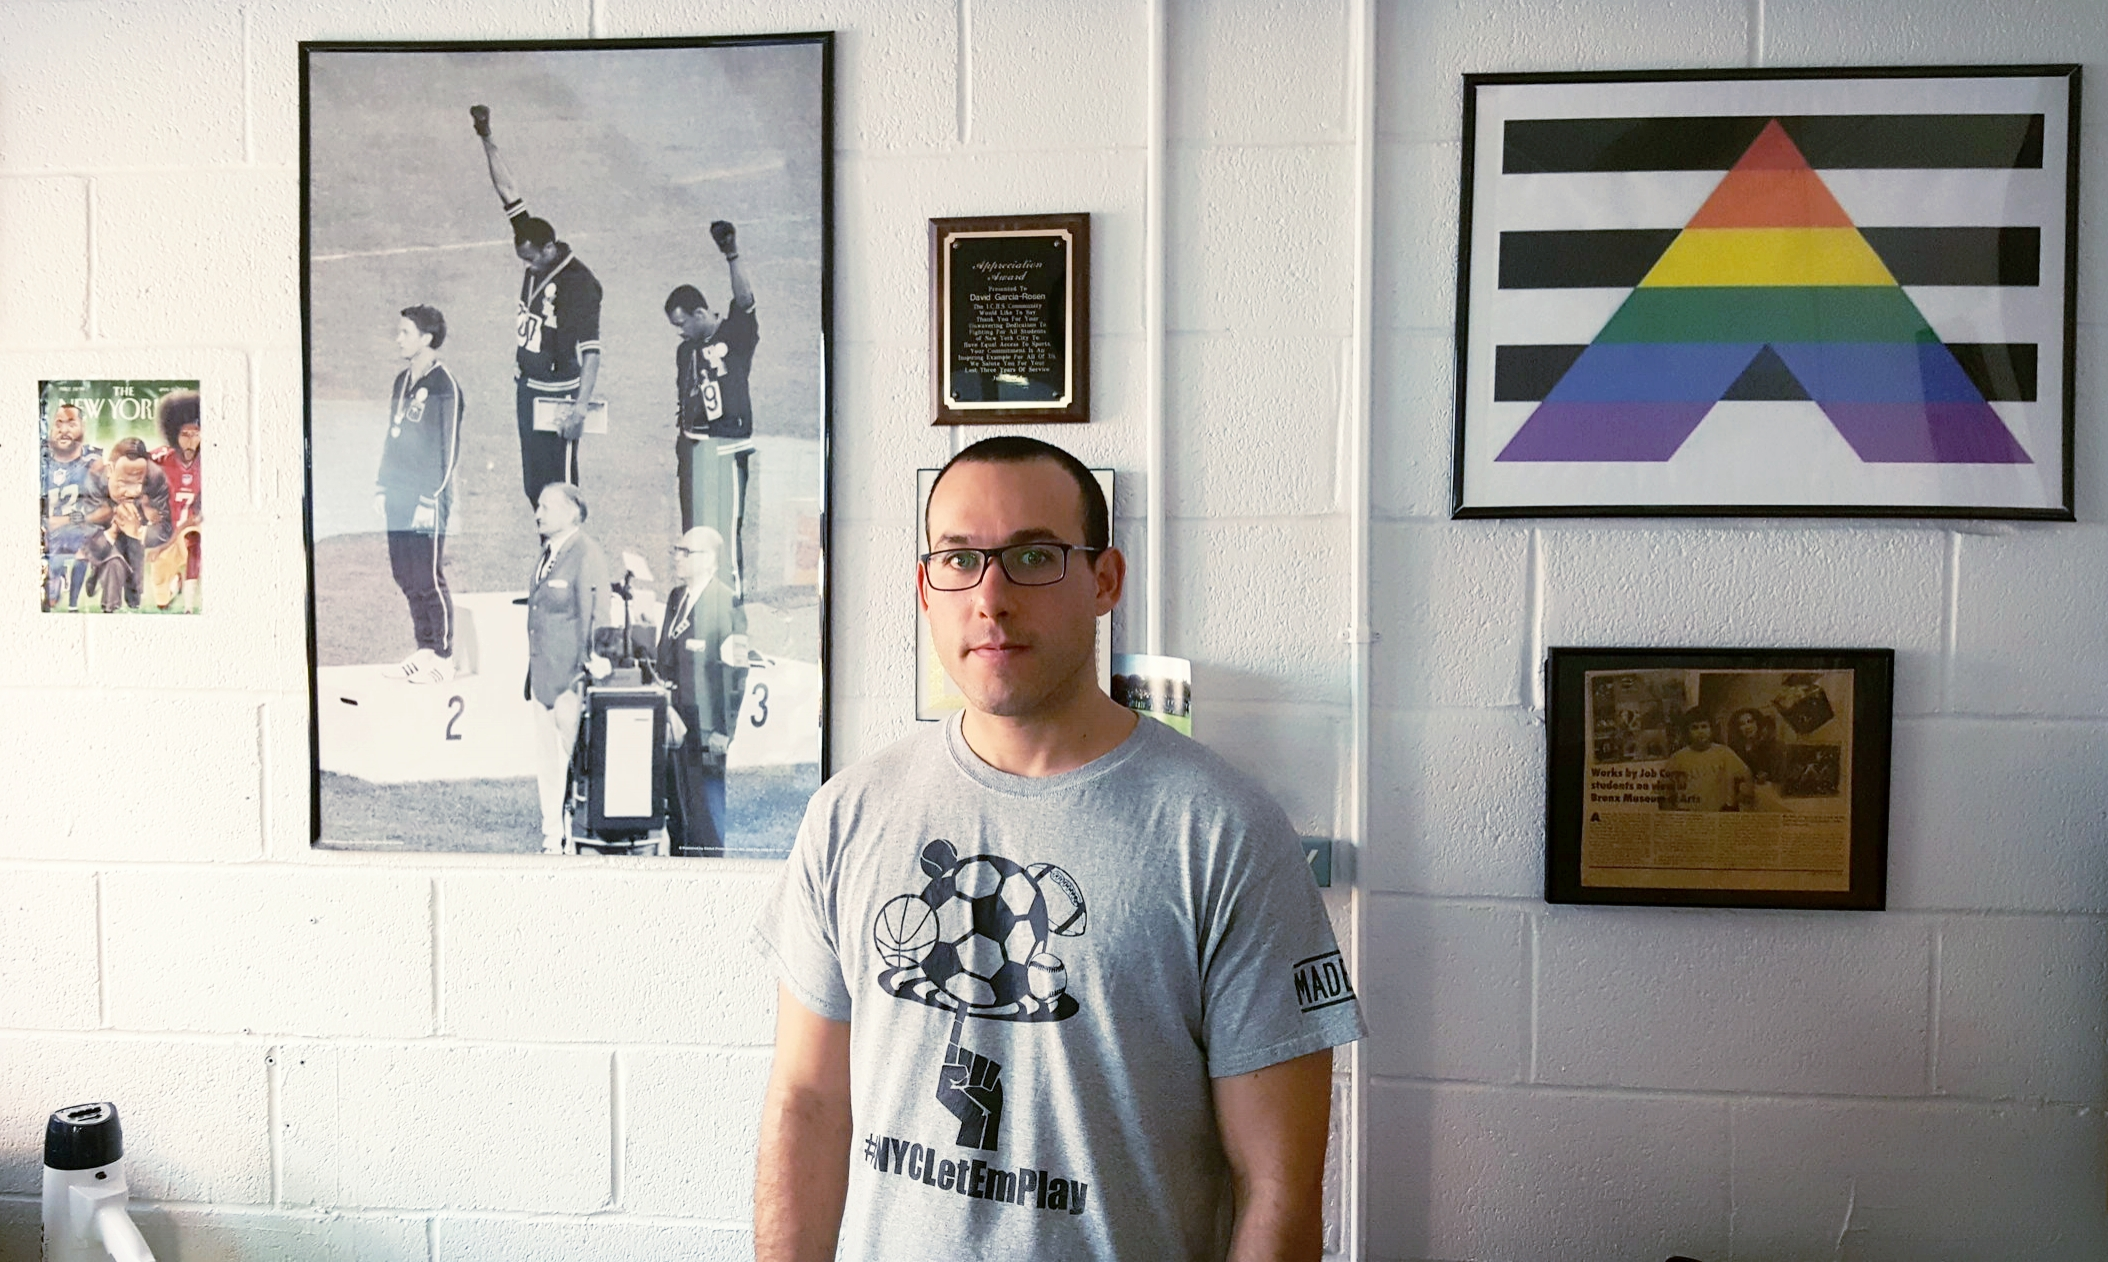 """Among Mr. Garcia-Rosen's inspirations: Tommie Smith and John Carlos, black sprinters who staged a """"black fist"""" protest at the 1968 Olympics in Mexico;former San Francisco 49ers quarterback and racial justice activist Colin Kaepernick;and Martin Luther King, Jr. With the support of his students, he founded the  NYC Let 'Em Play  movement to raise awareness of sports inequity in New York City high schools.  Pictured here in his dean's office at Bronx Academy of Letters"""